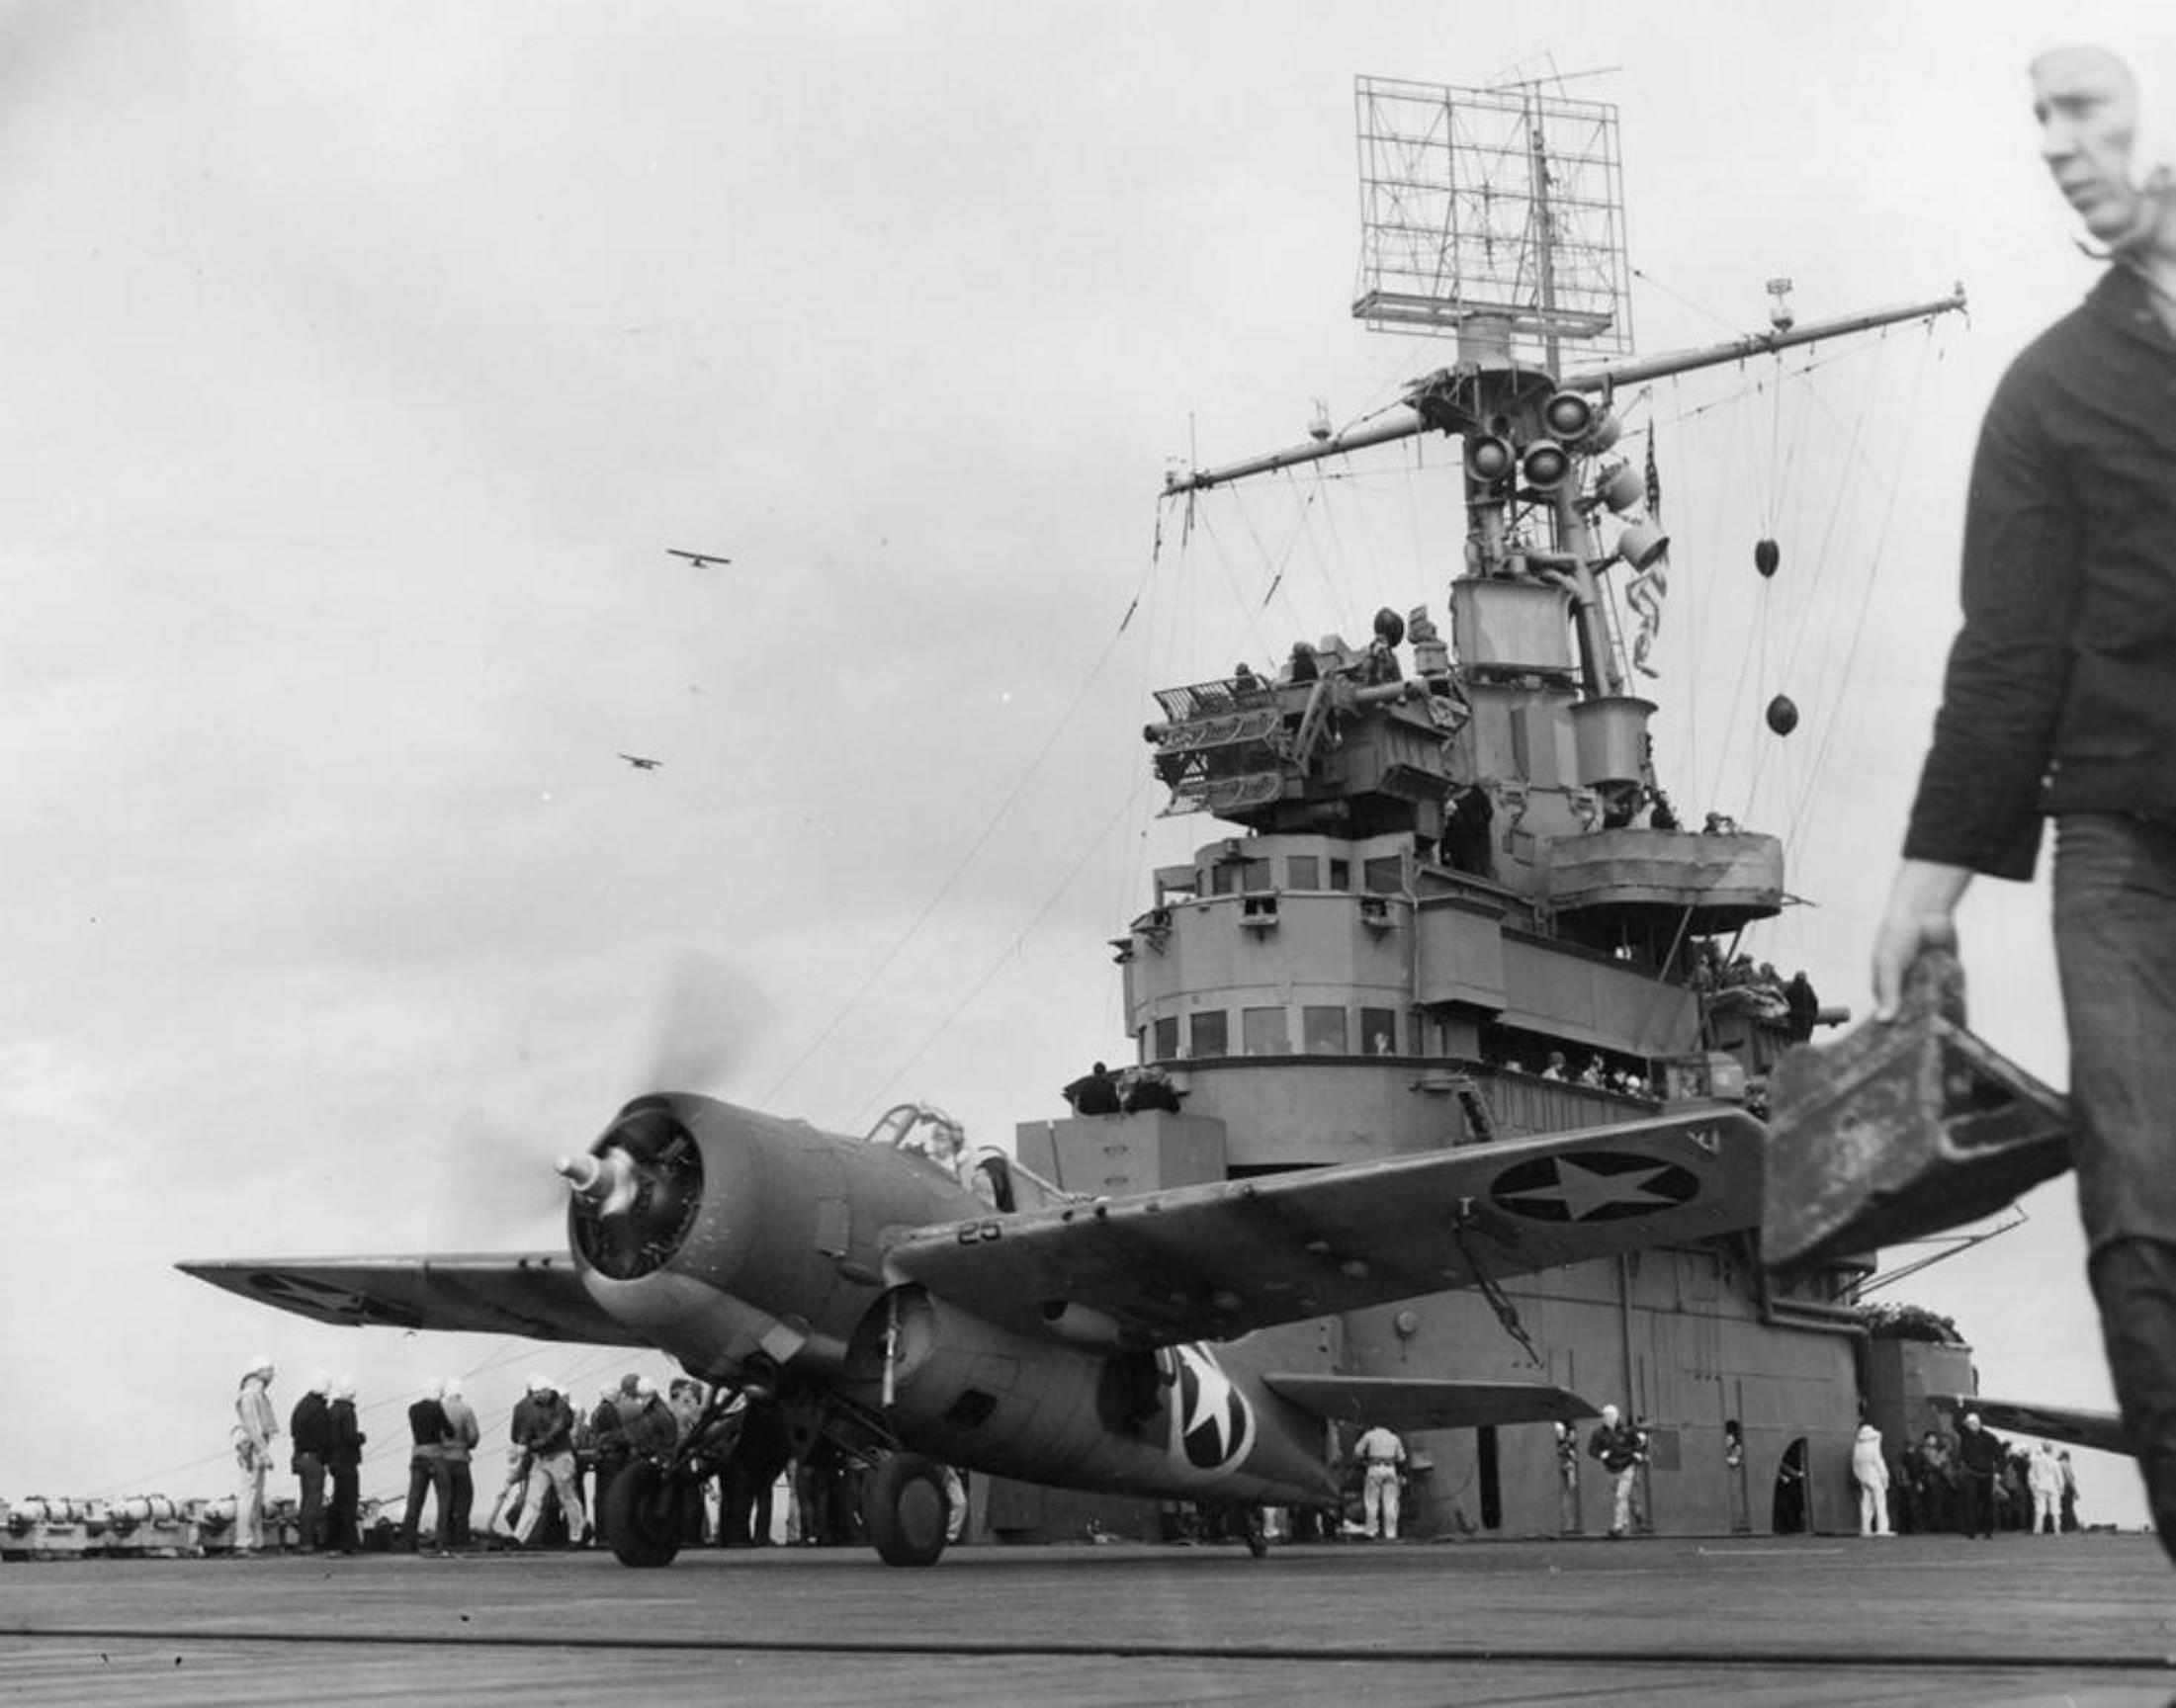 F4F Wildcat fighter taking off from aircraft carrier USS Ranger.